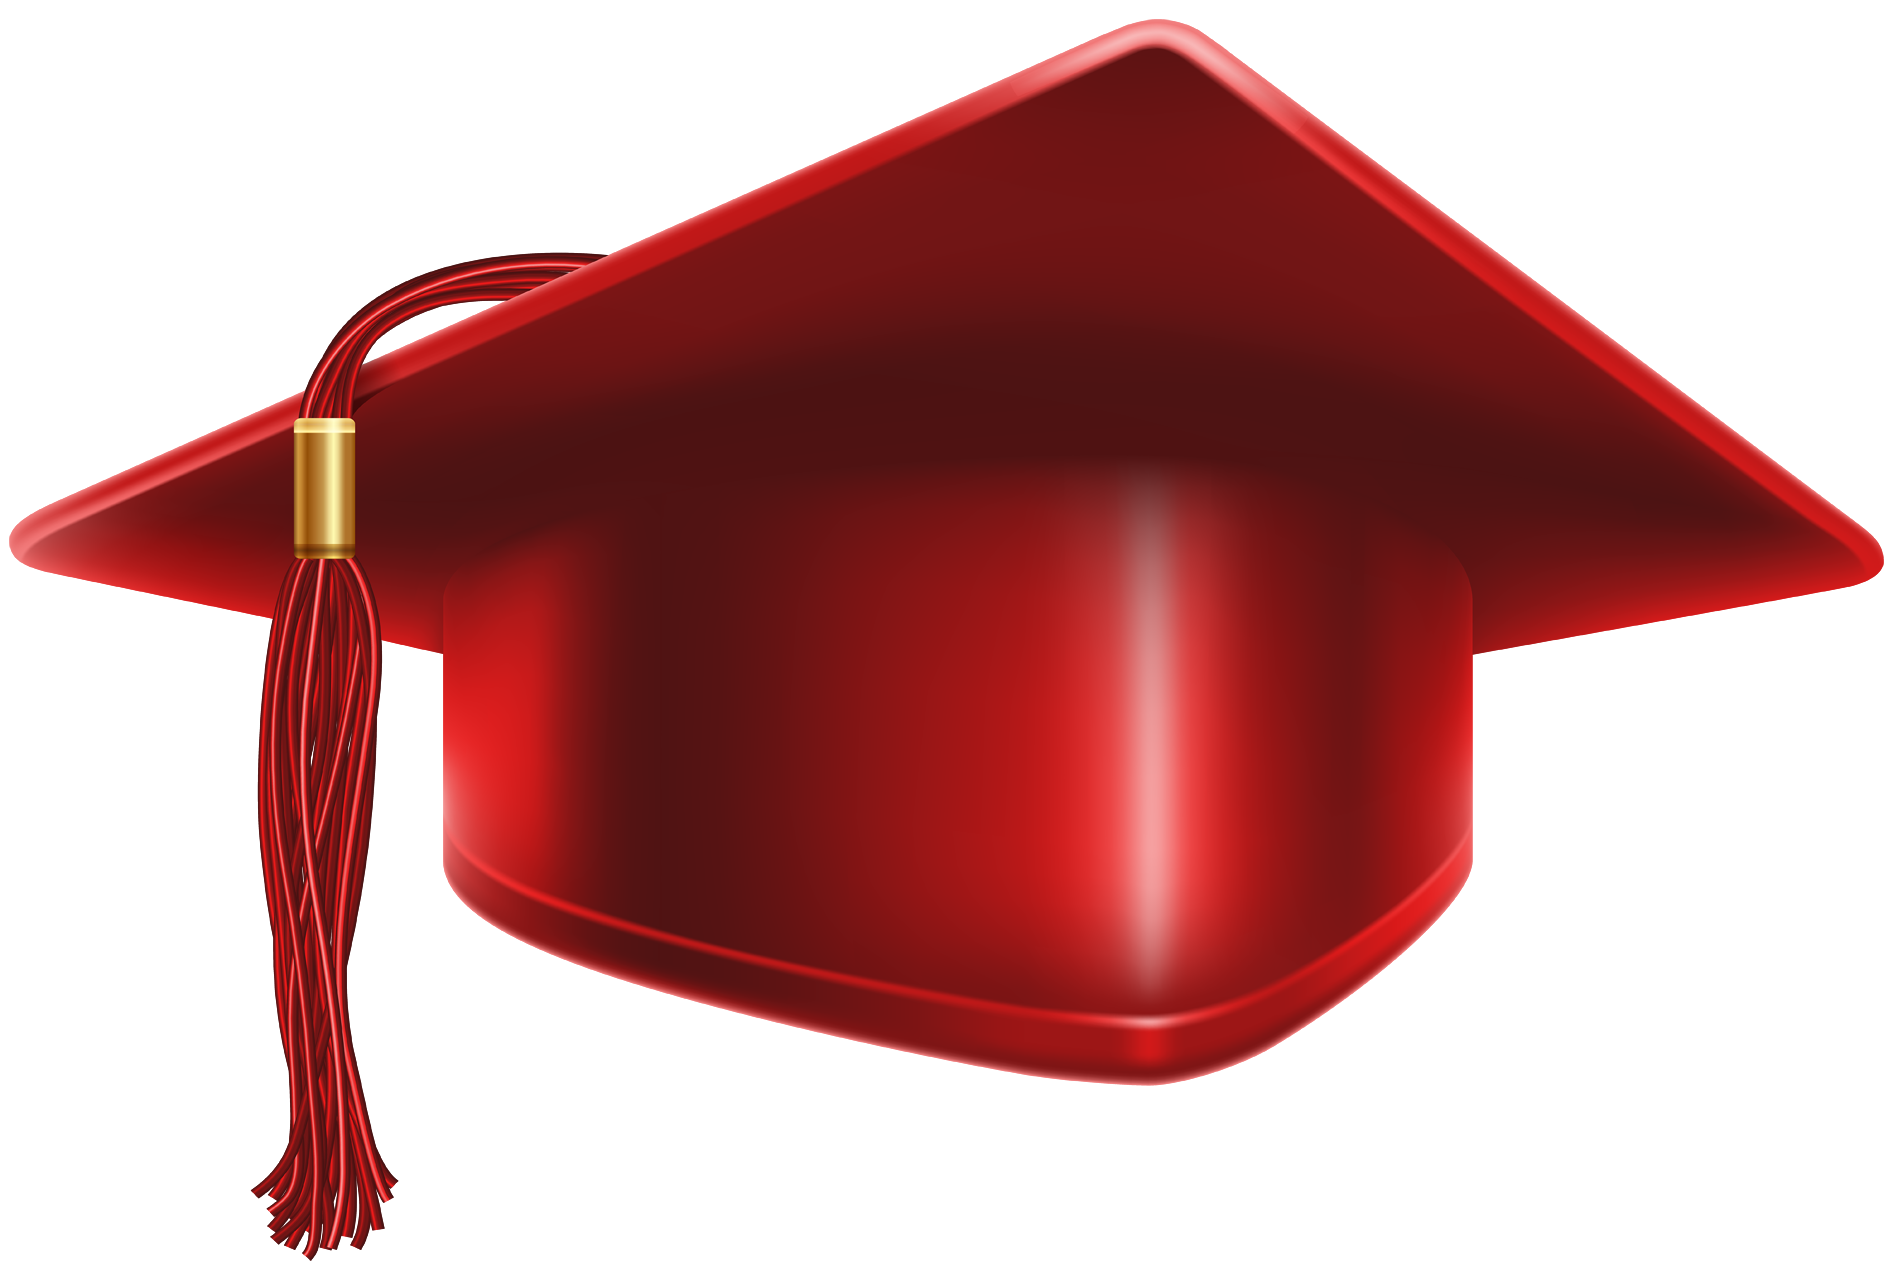 Red cap png. Graduation and diploma clipart